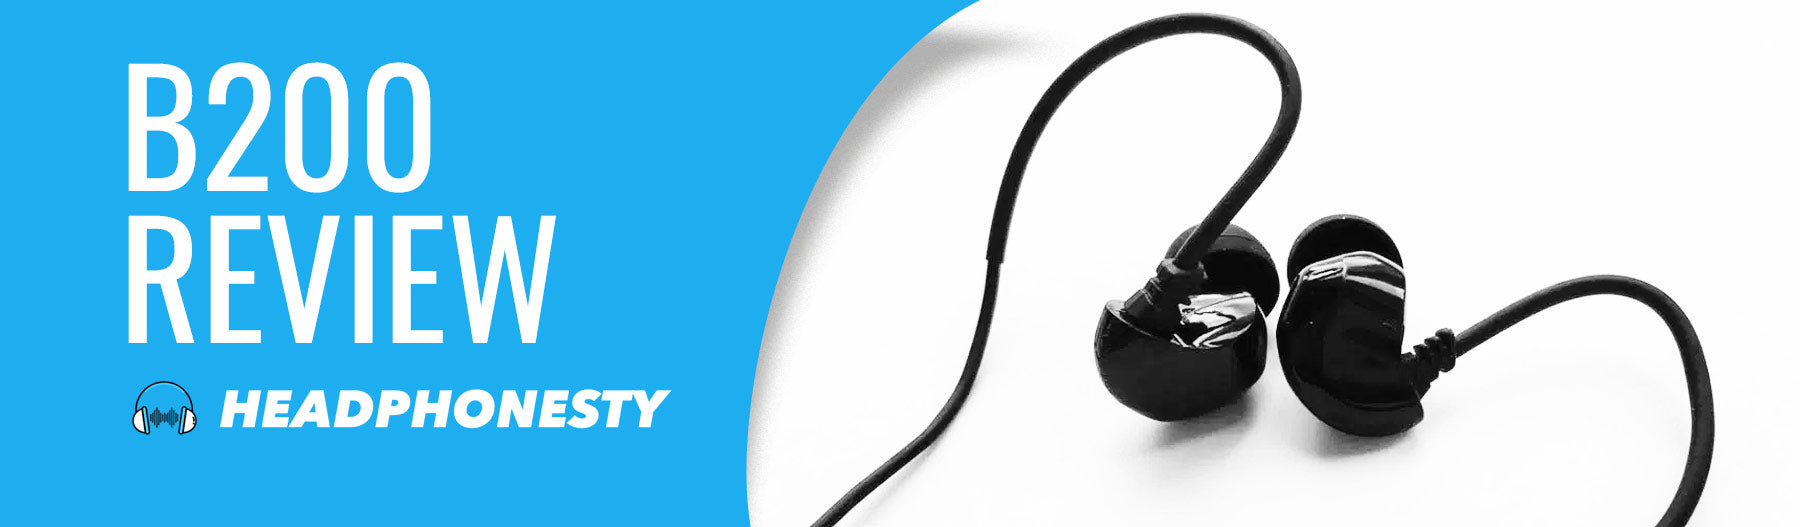 Brainwavz B200 Review - by Headphonesty